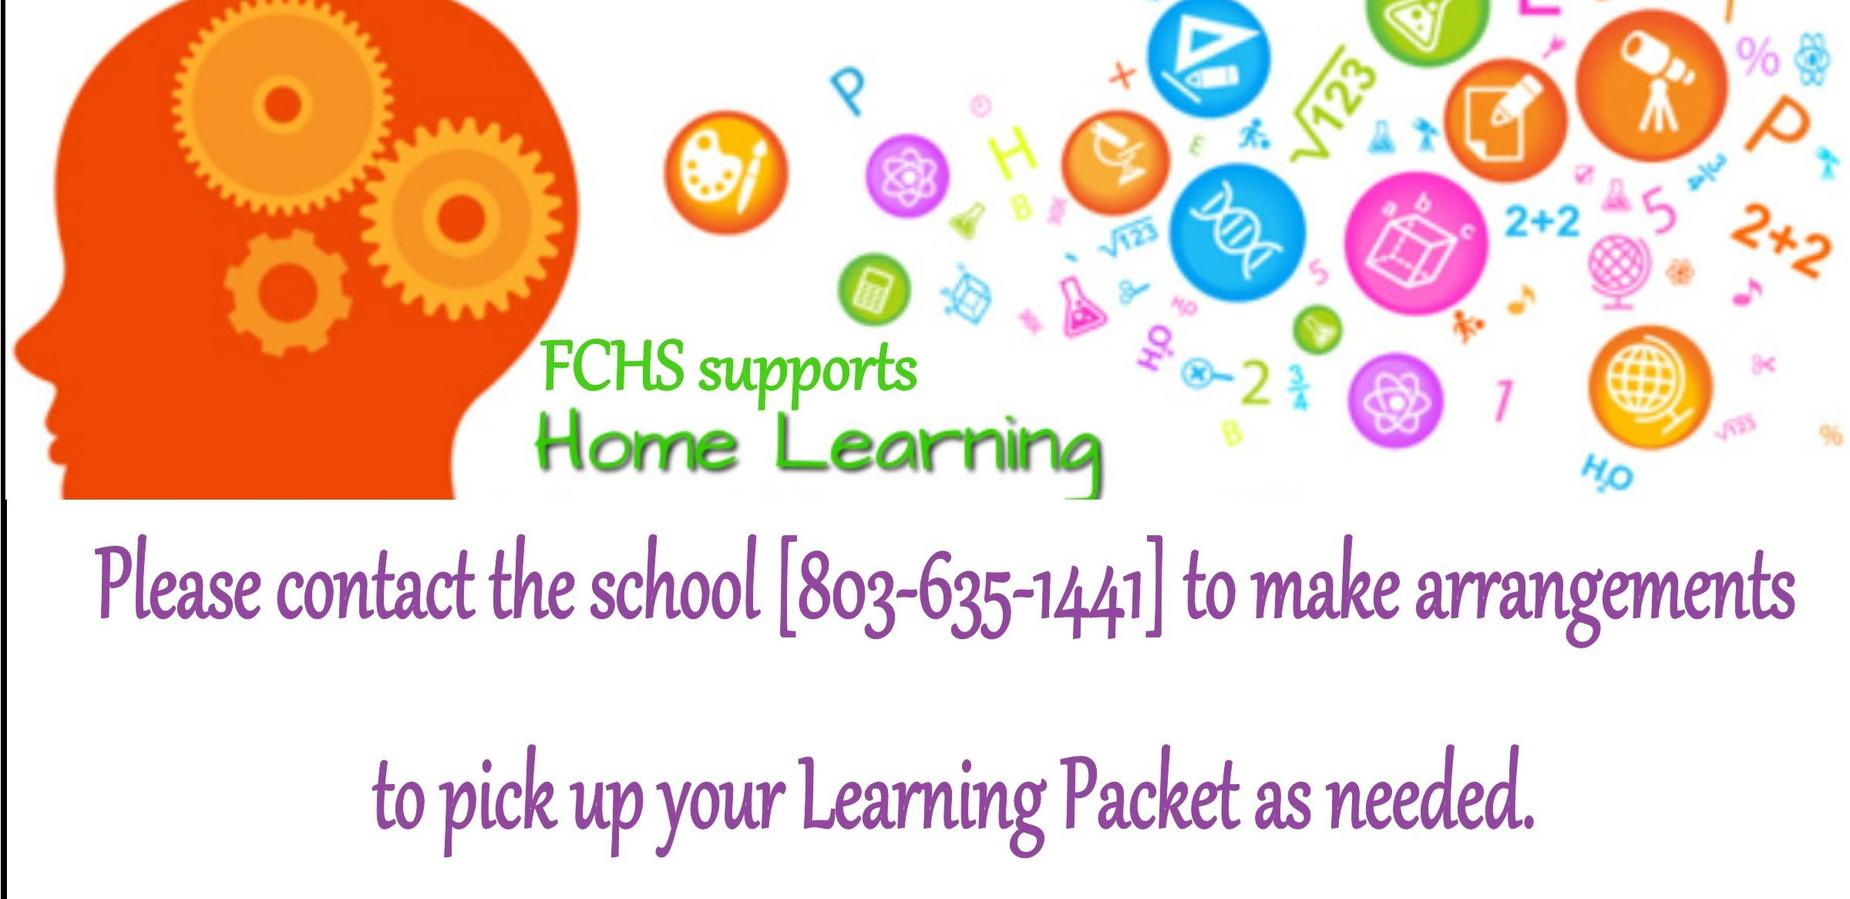 FCHS SUPPORTS HOME LEARNING; Please contact the school [803-635-1441] to make arrangements to pick up learning packets as needed.